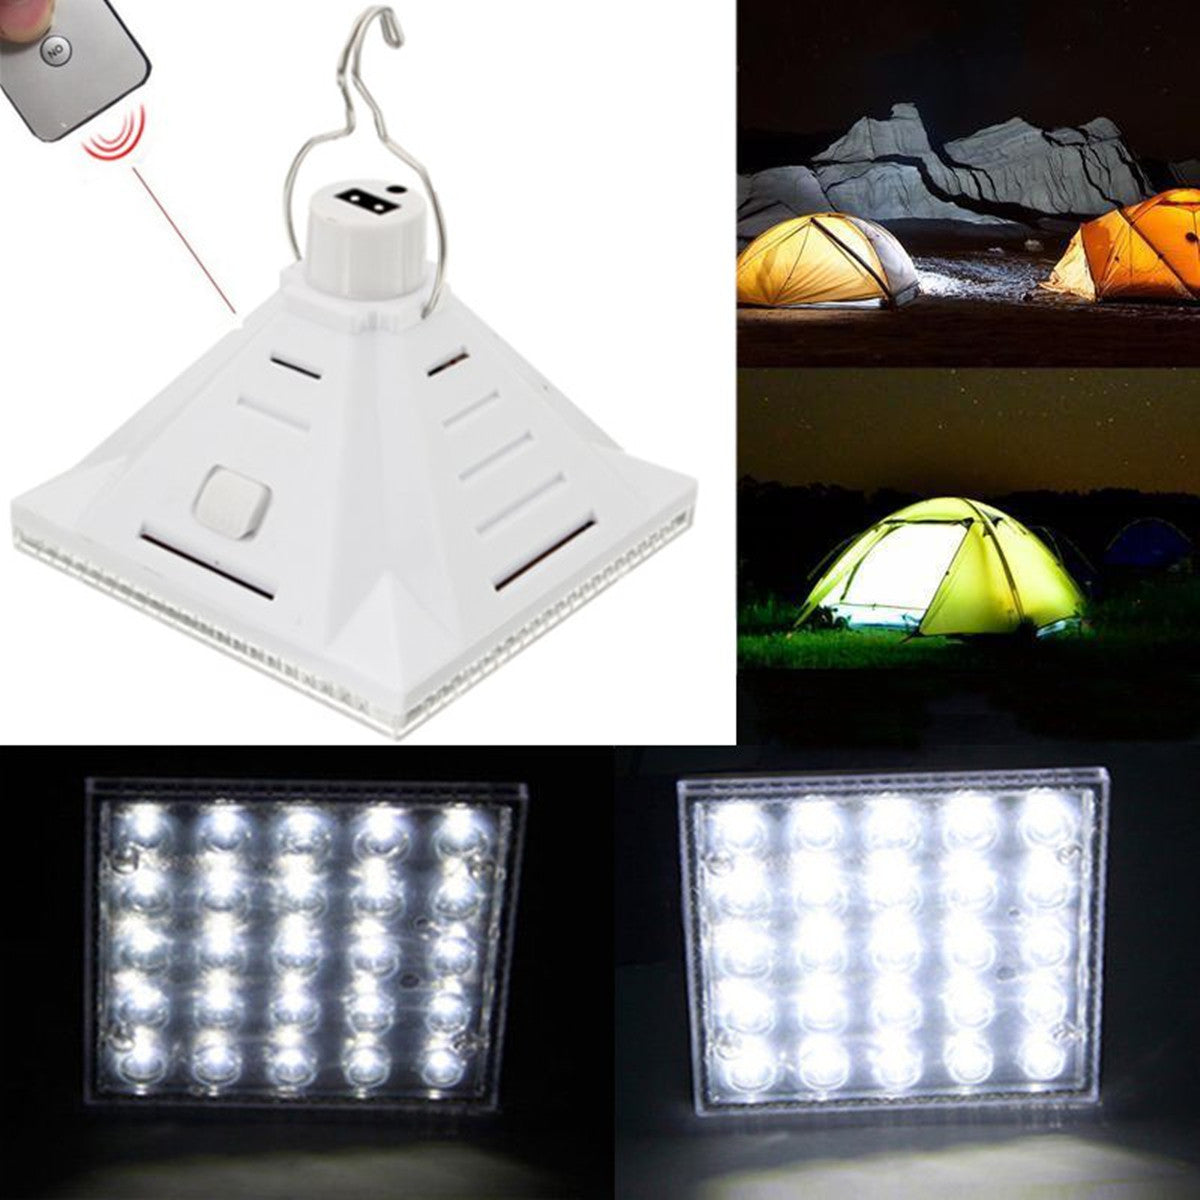 25LED Wit Zonne-energie Camping Lamp Afstandsbediening Hangend Outdoor Tent Light